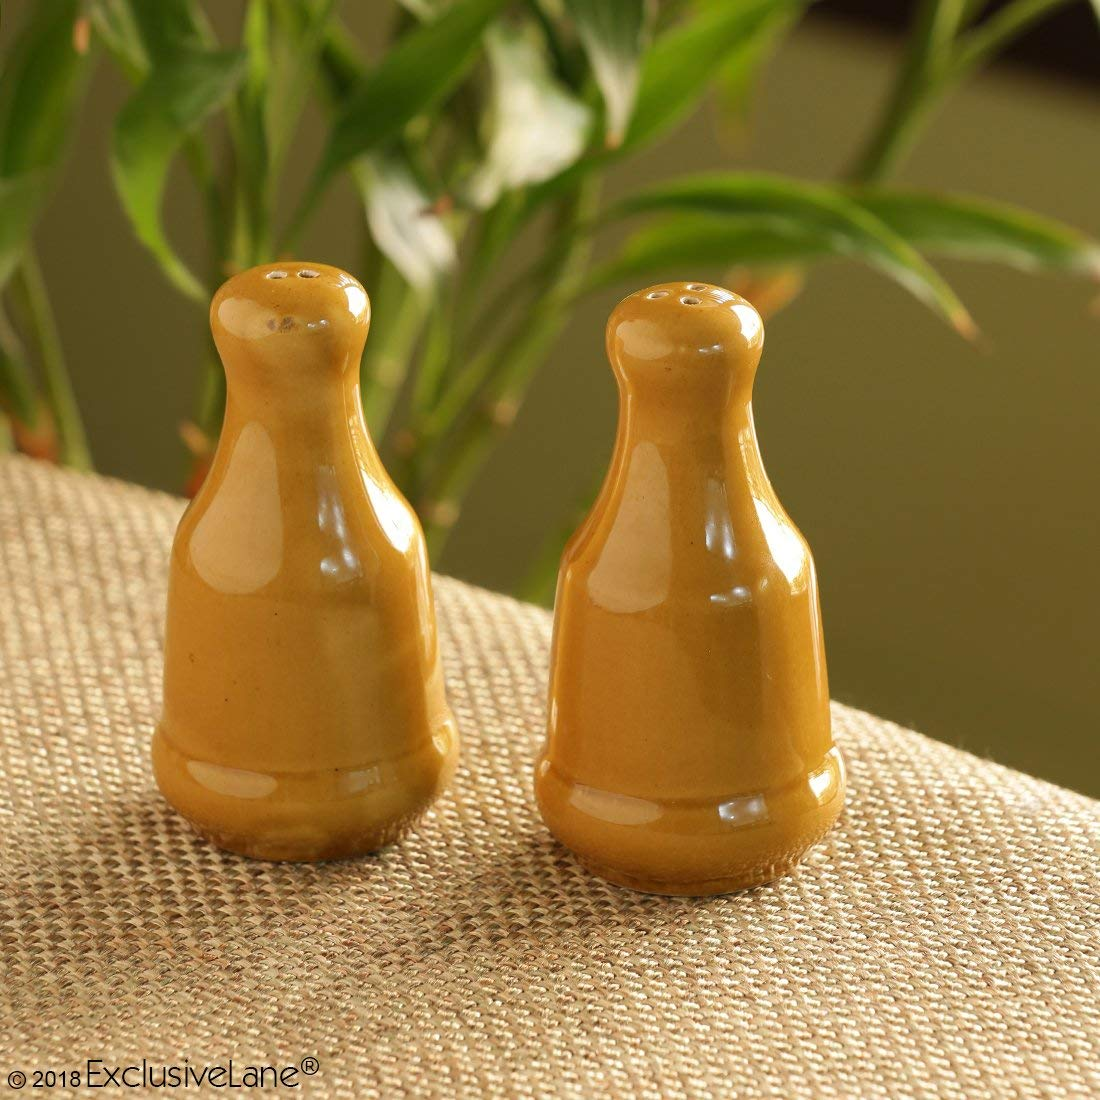 ExclusiveLane Mustard Salt & Pepper Shaker Sets In Ceramic - Salt & Pepper Mill Sets Salt & Pepper Shaker Sets Salt And Pepper Set For Dining Table Salt Shaker salt and pepper grinder set pepper mill